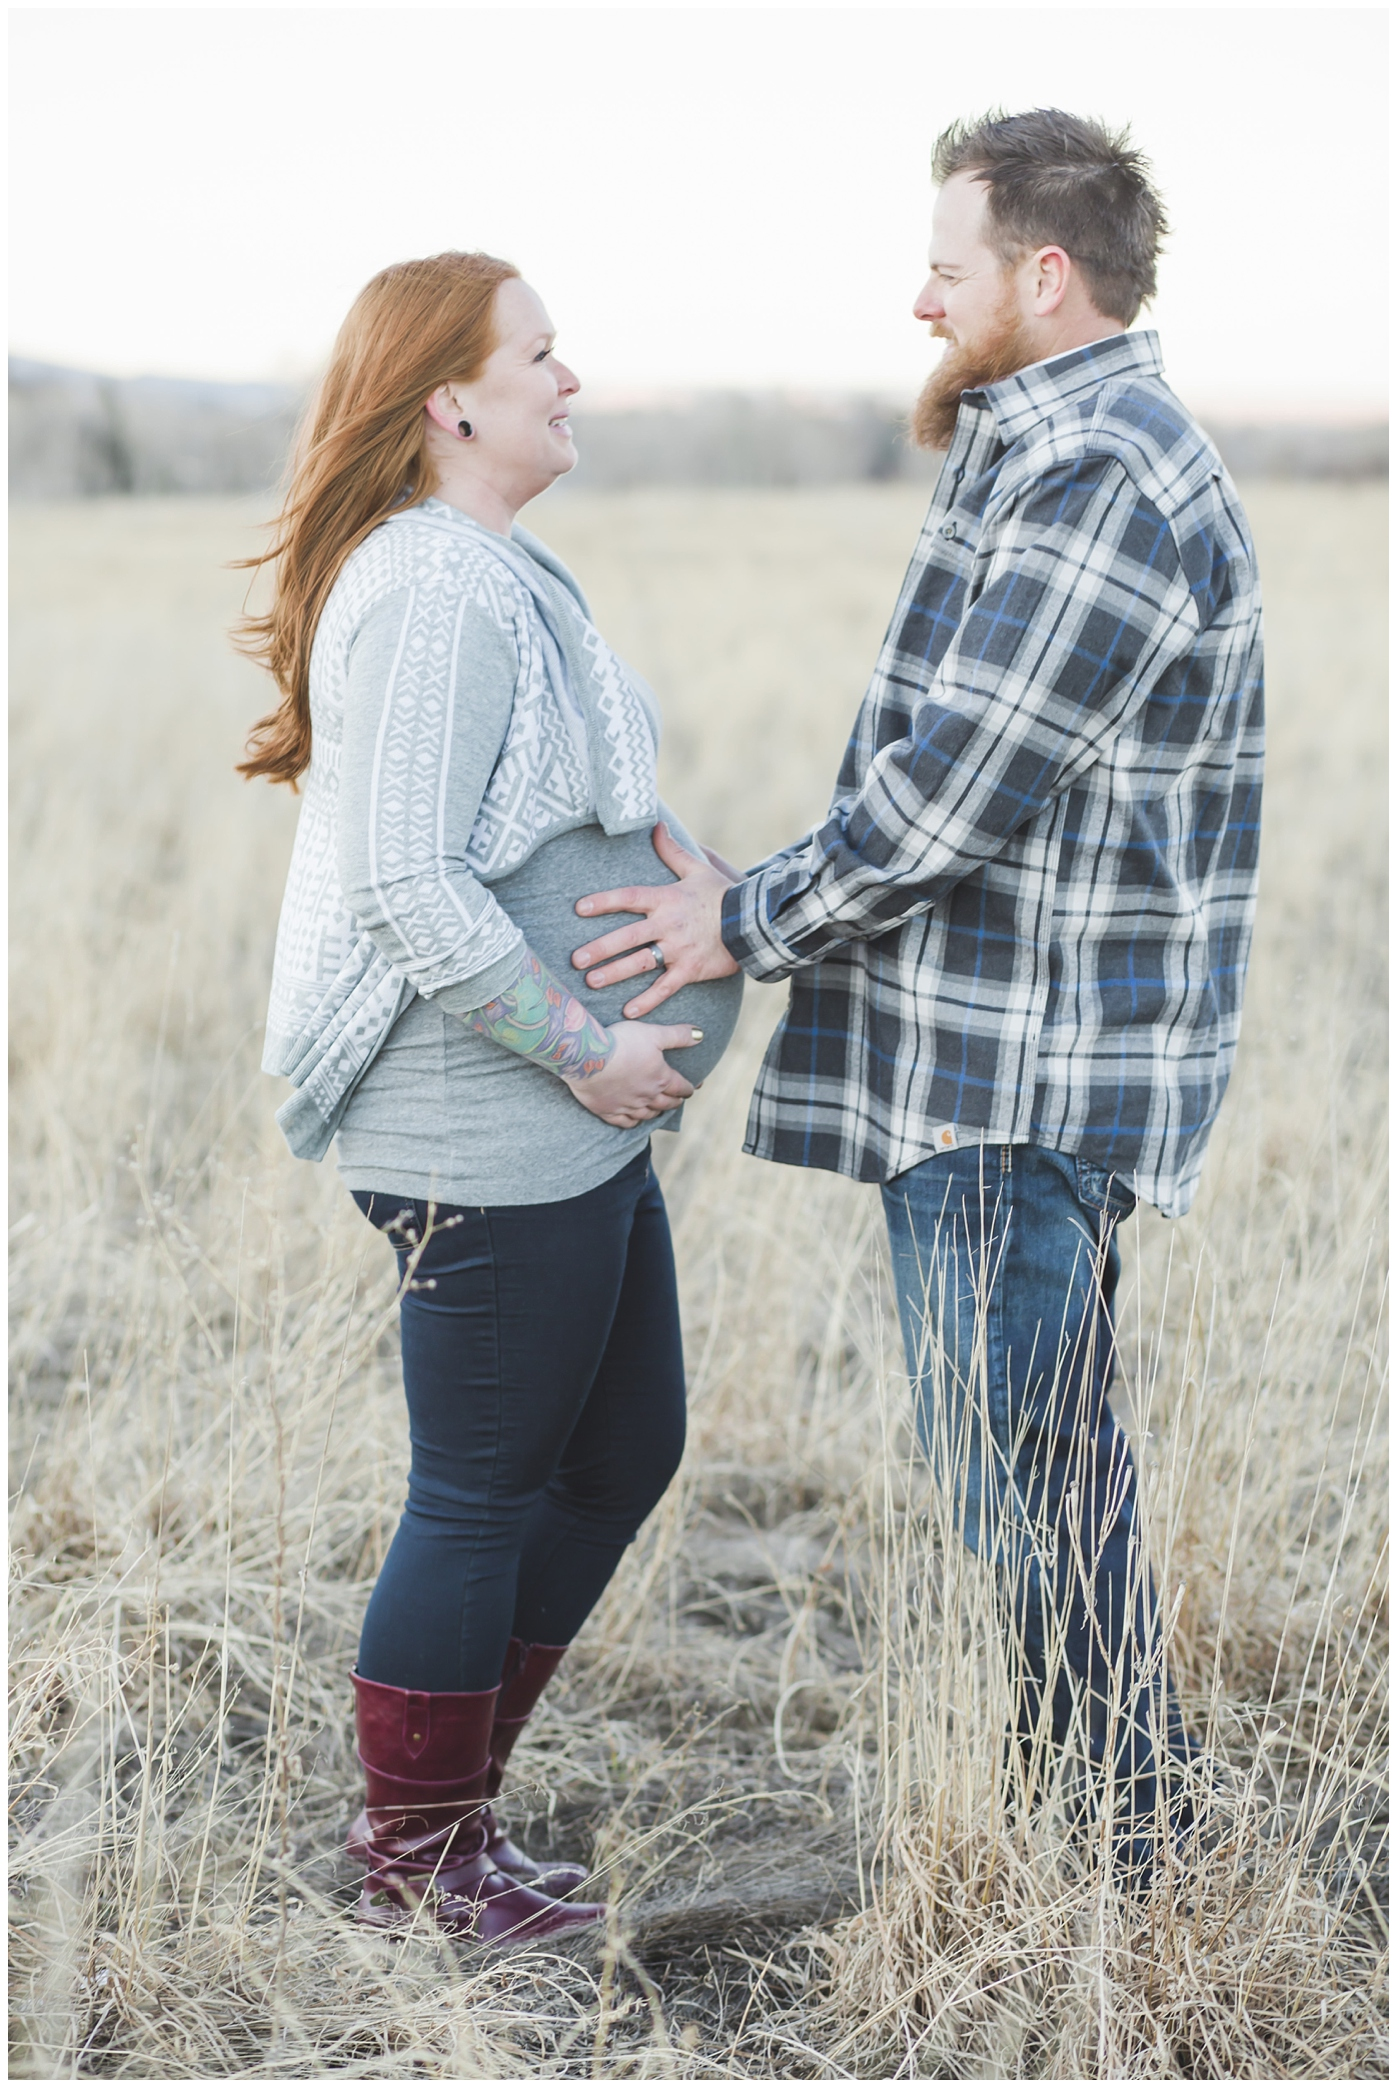 20150217MaternityWallKatie088_web-fort-collins-maternity-photographer.jpg